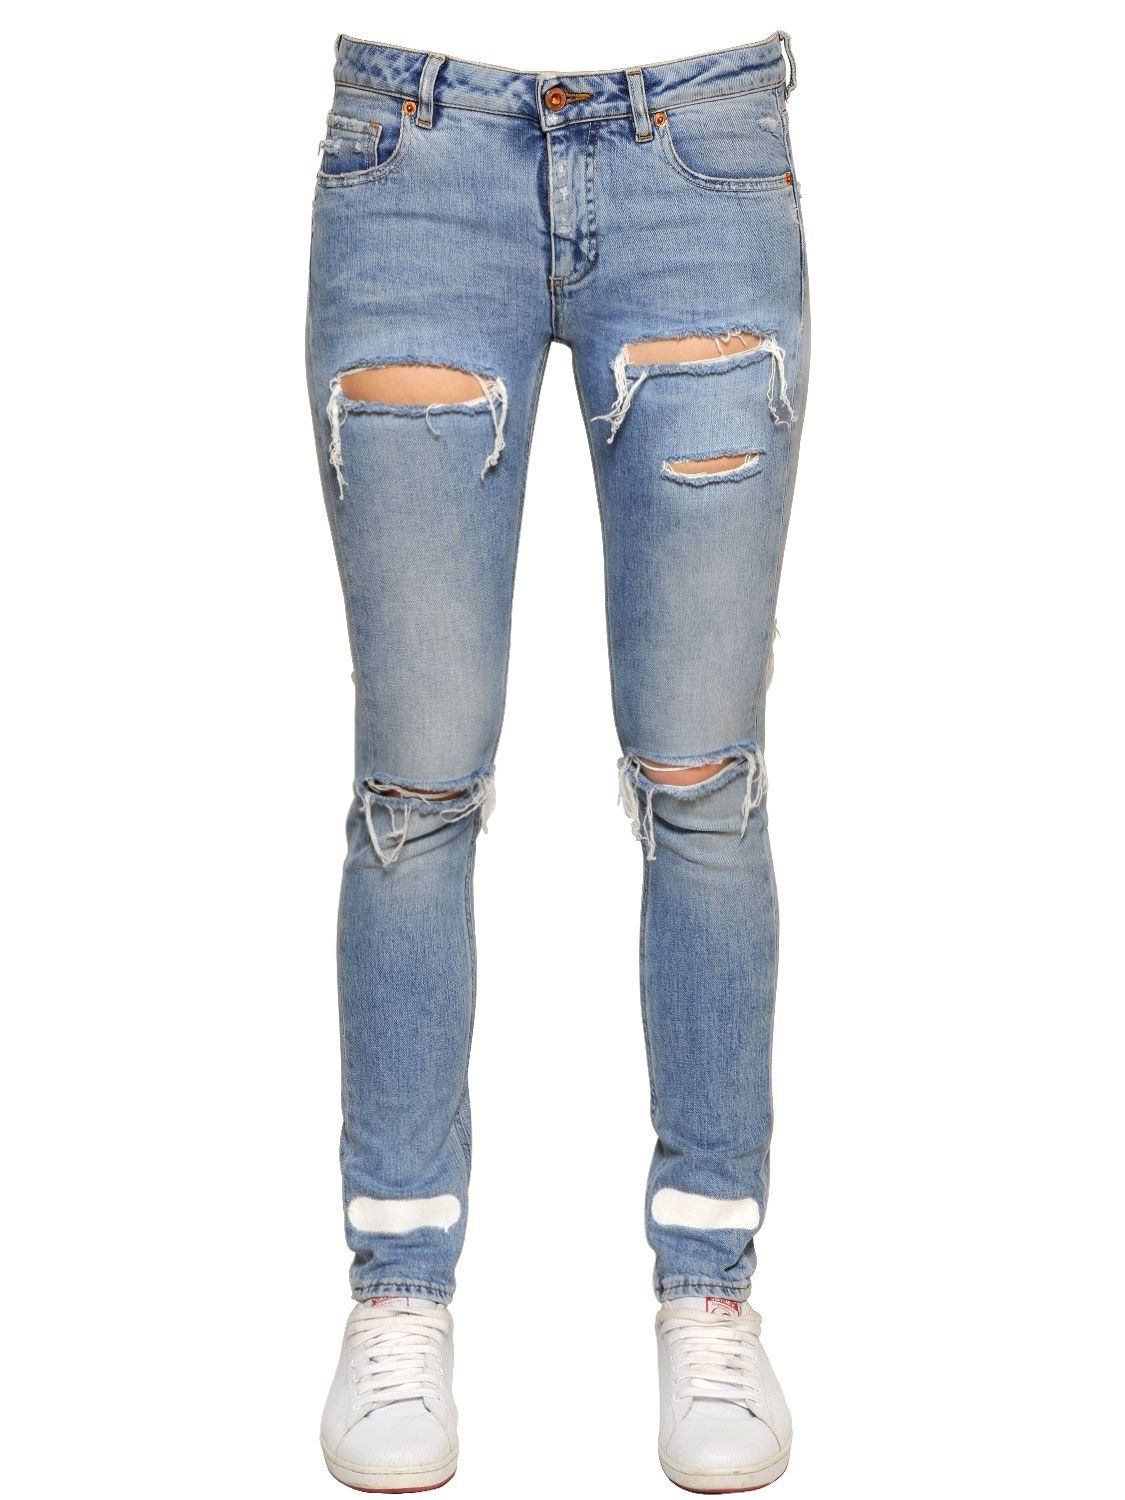 Off-white c/o virgil abloh Spray Paint Cotton Denim Jeans in Blue ...